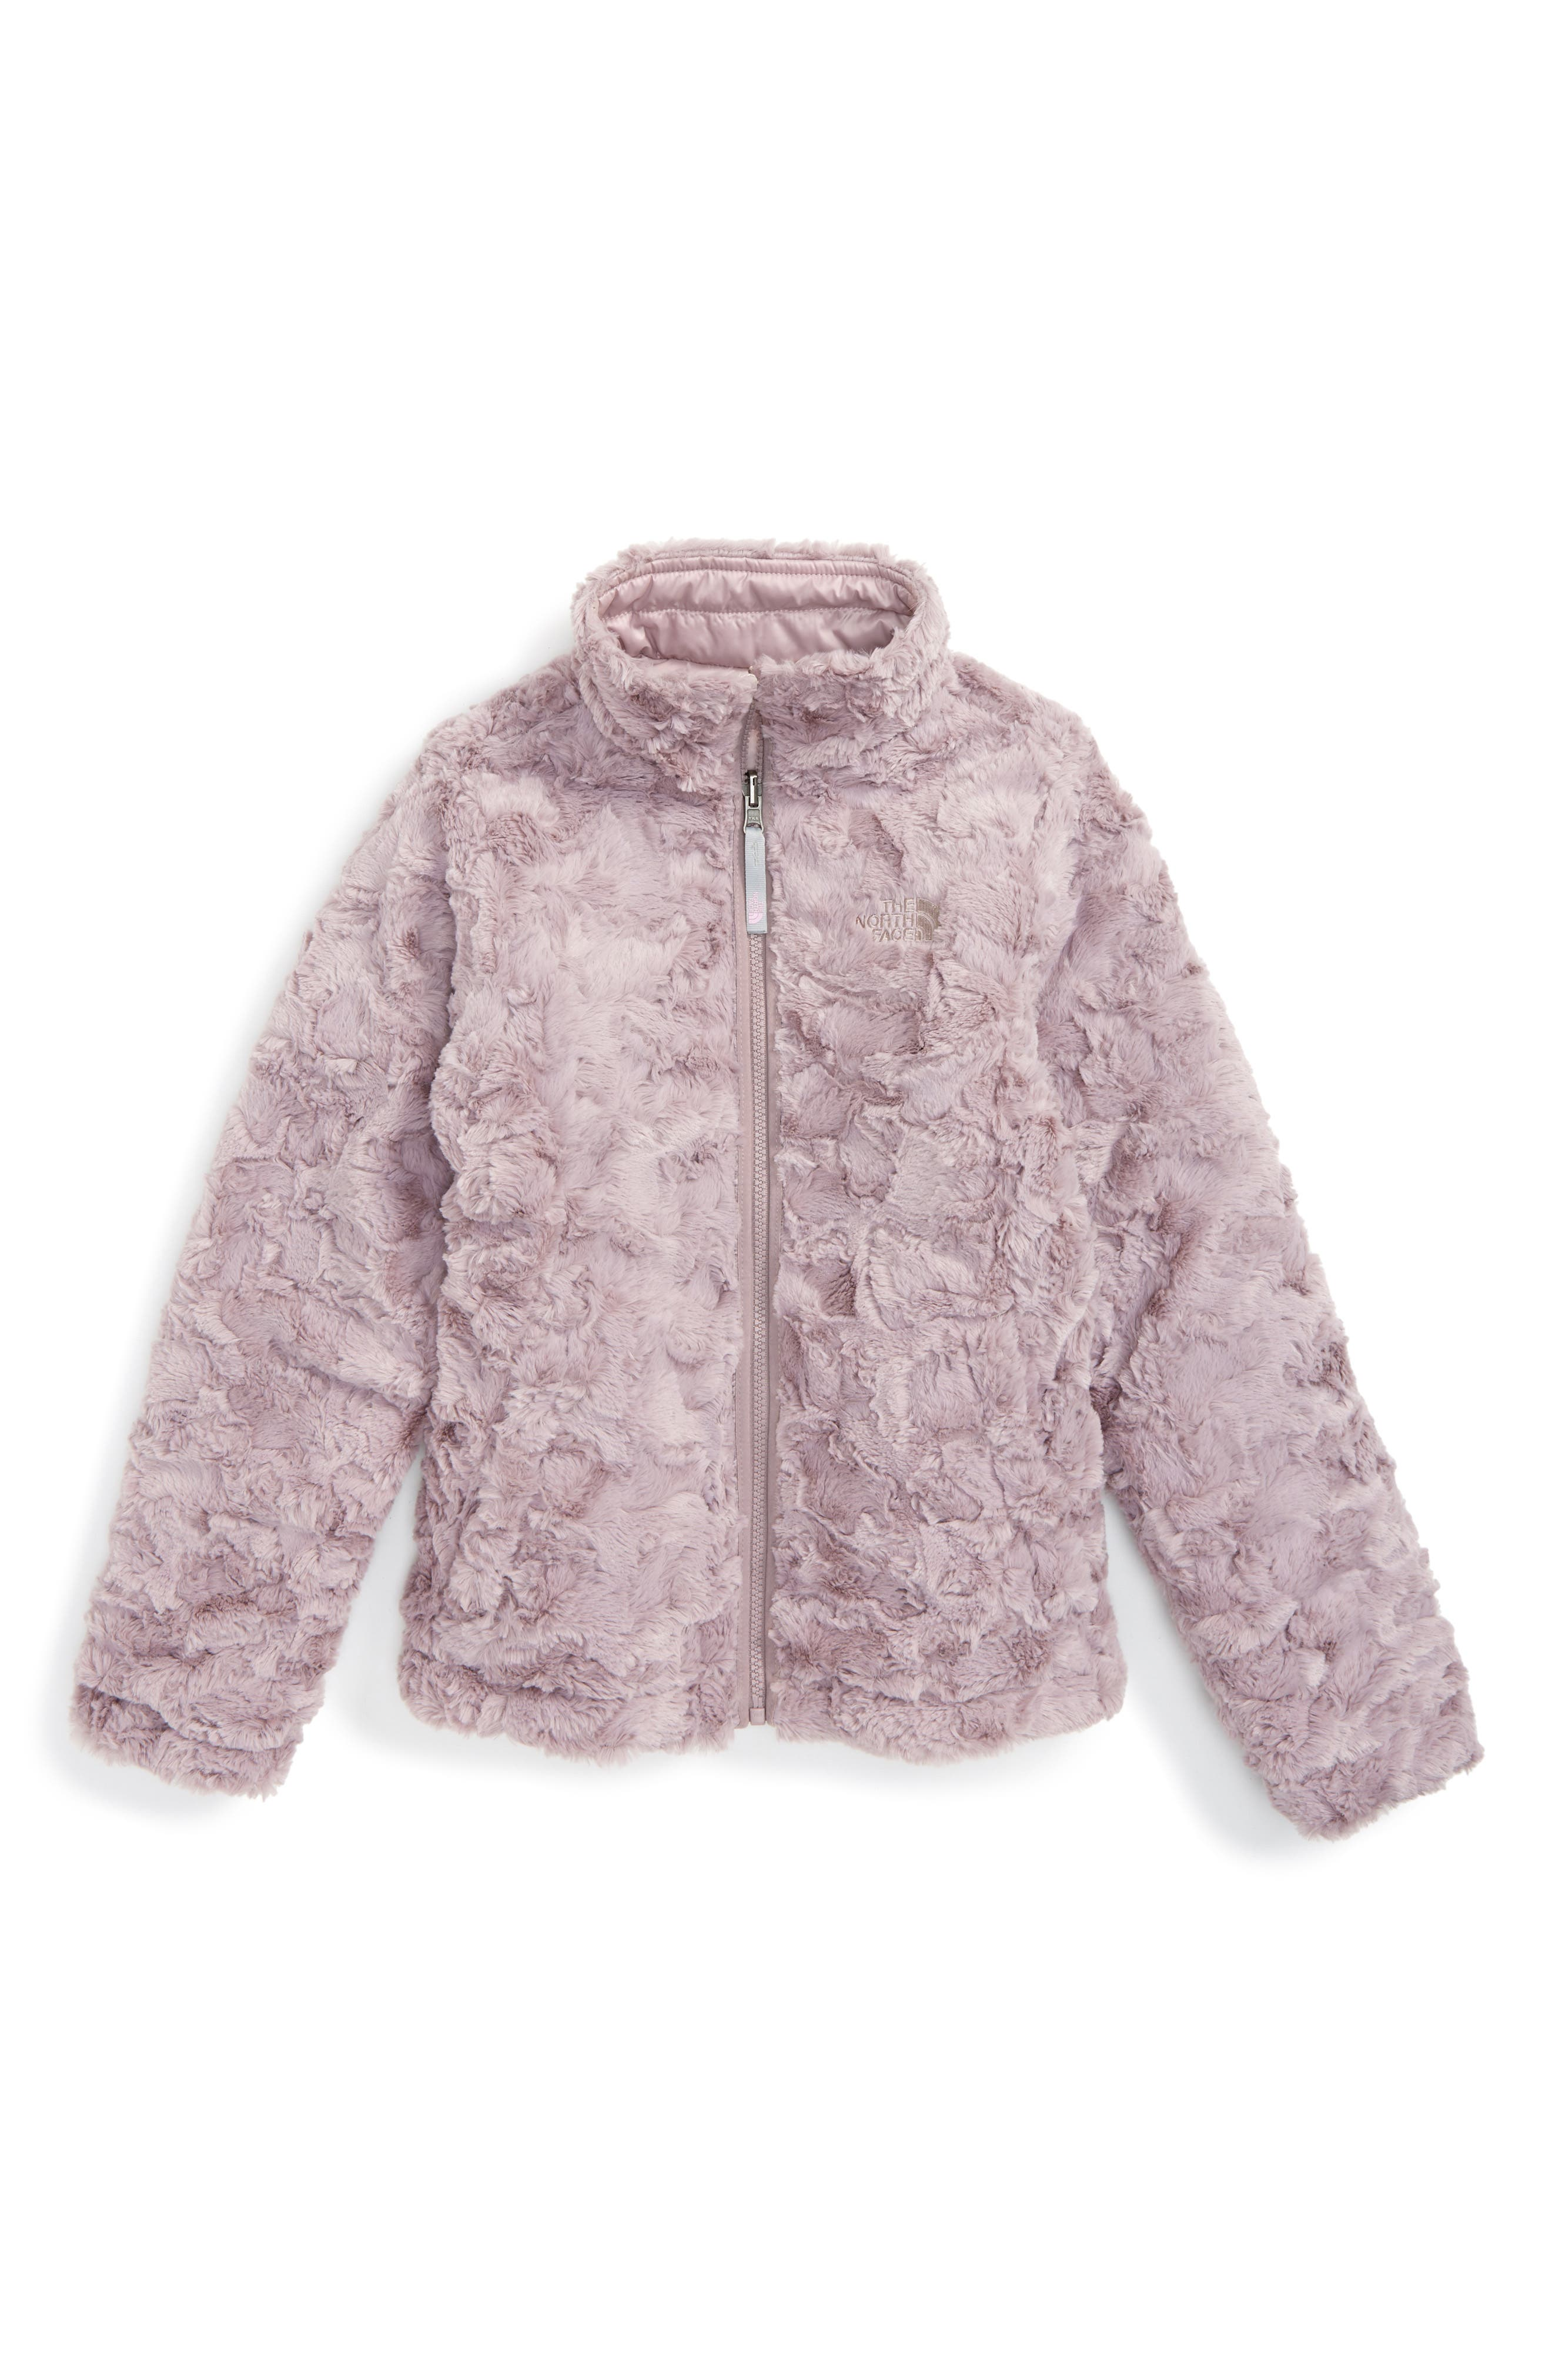 'Mossbud Swirl' Reversible Water Resistant Jacket,                             Alternate thumbnail 2, color,                             Burnished Lilac